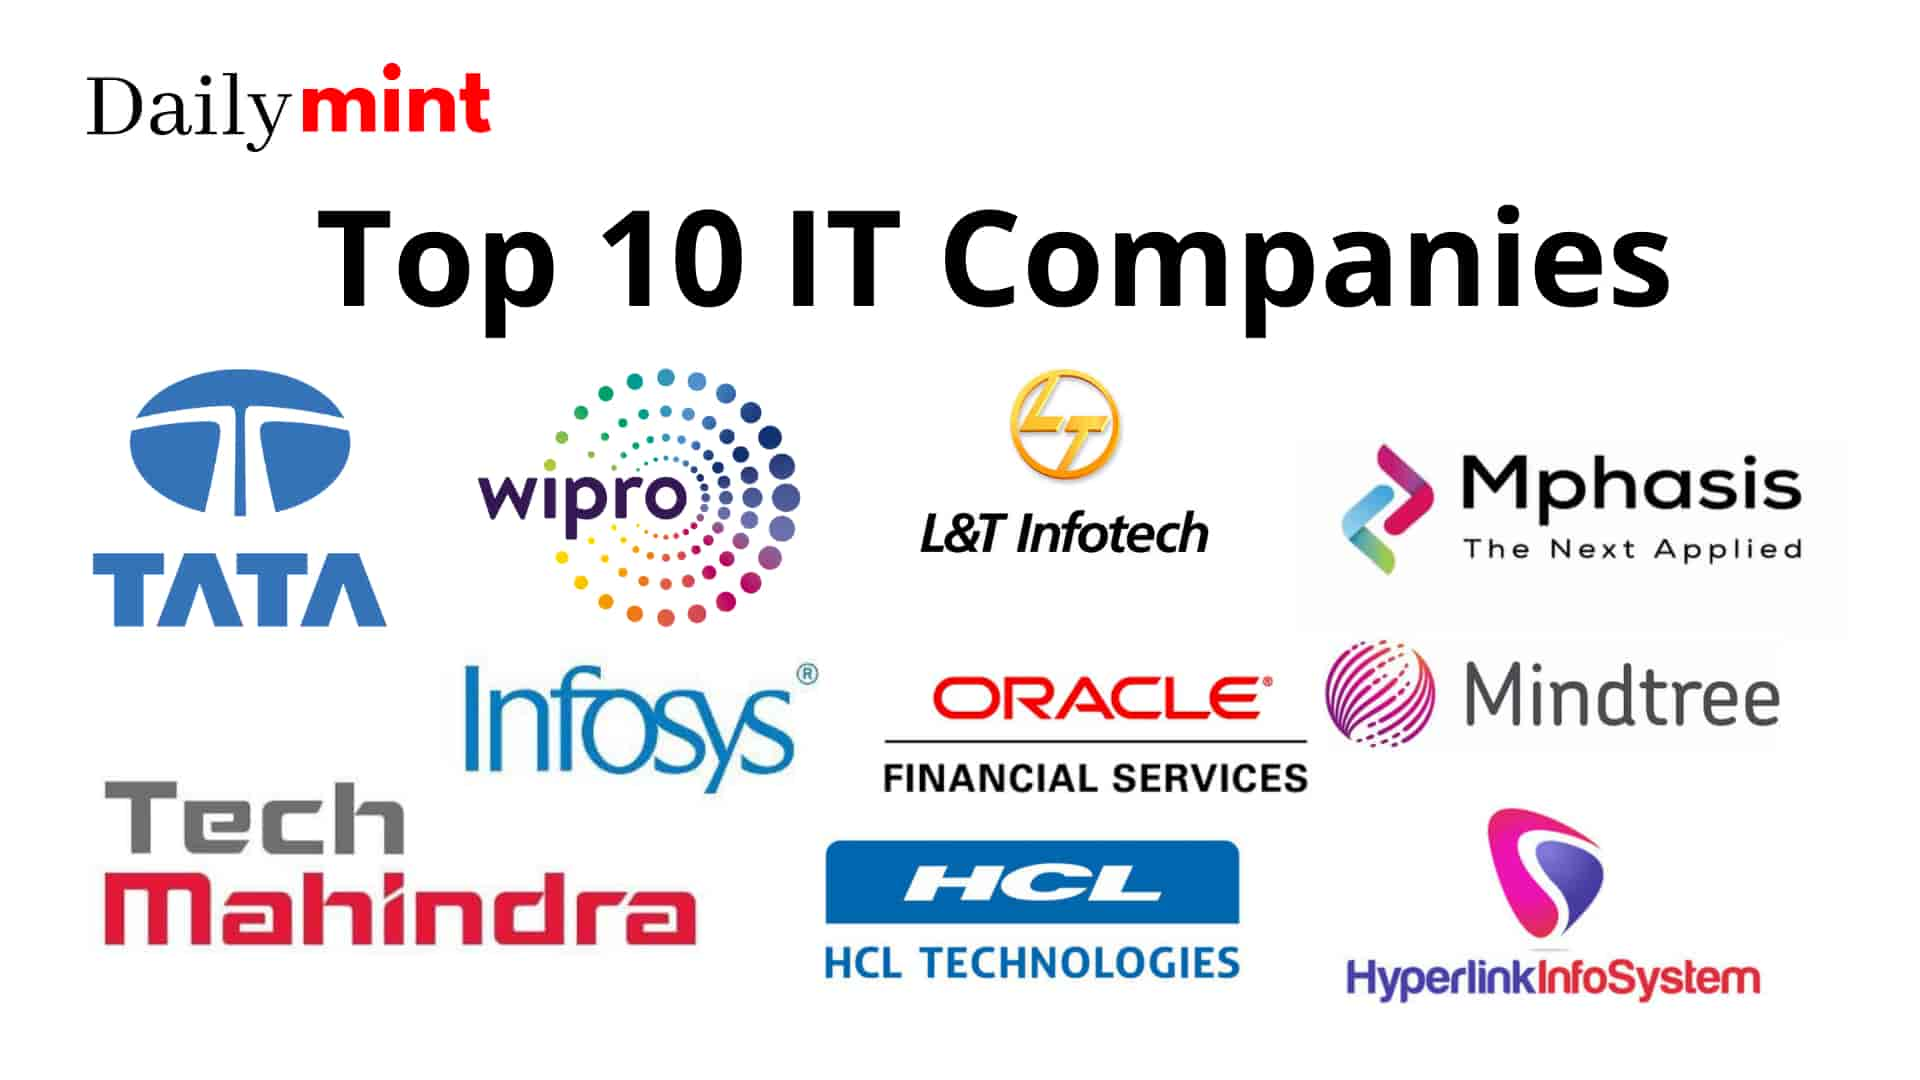 Top 10 IT Companies In India in 2021